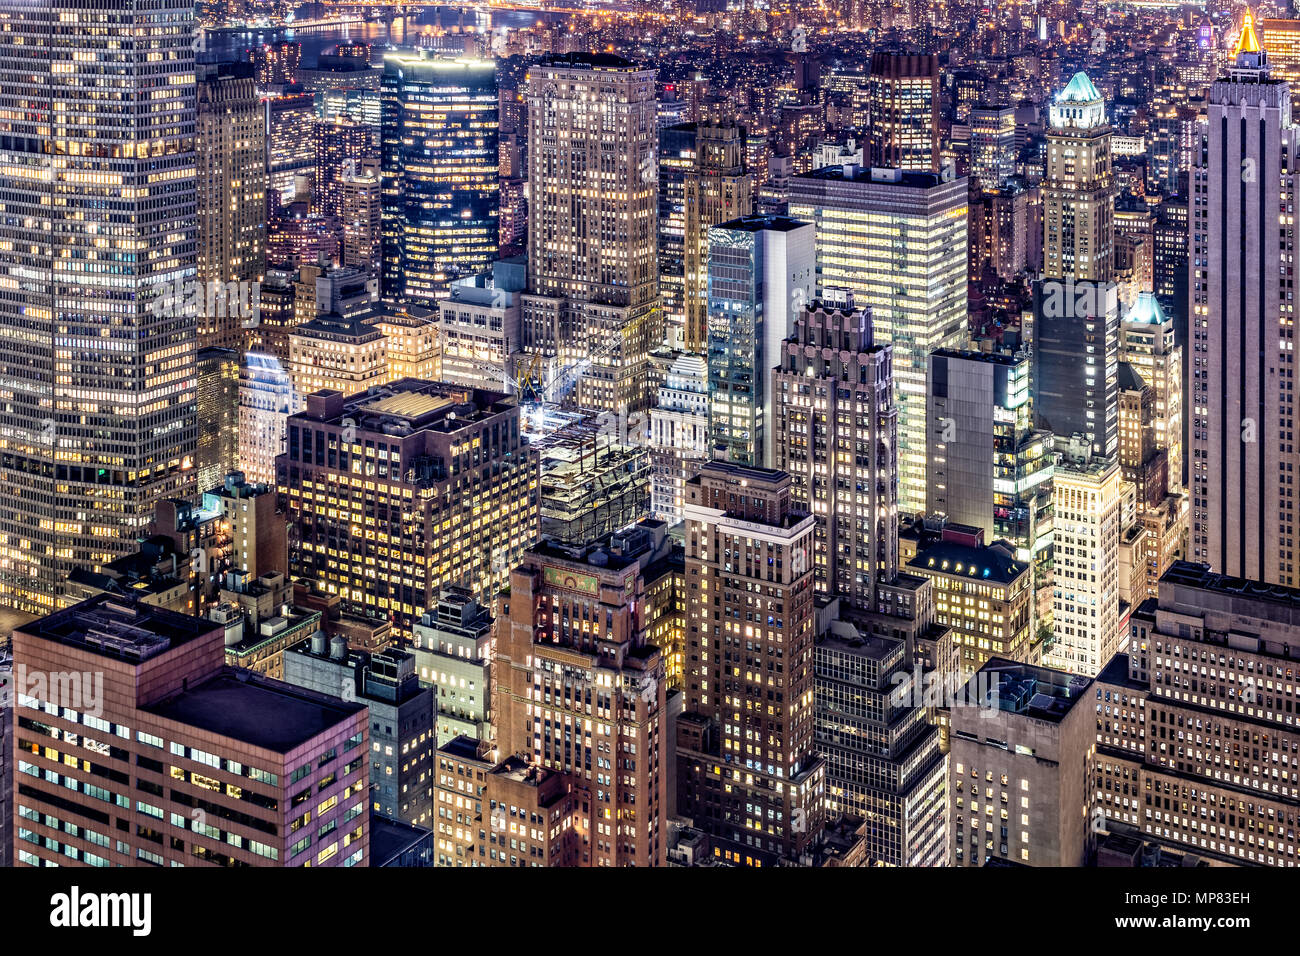 Vue aérienne de grattes-ciel de Manhattan by night Photo Stock